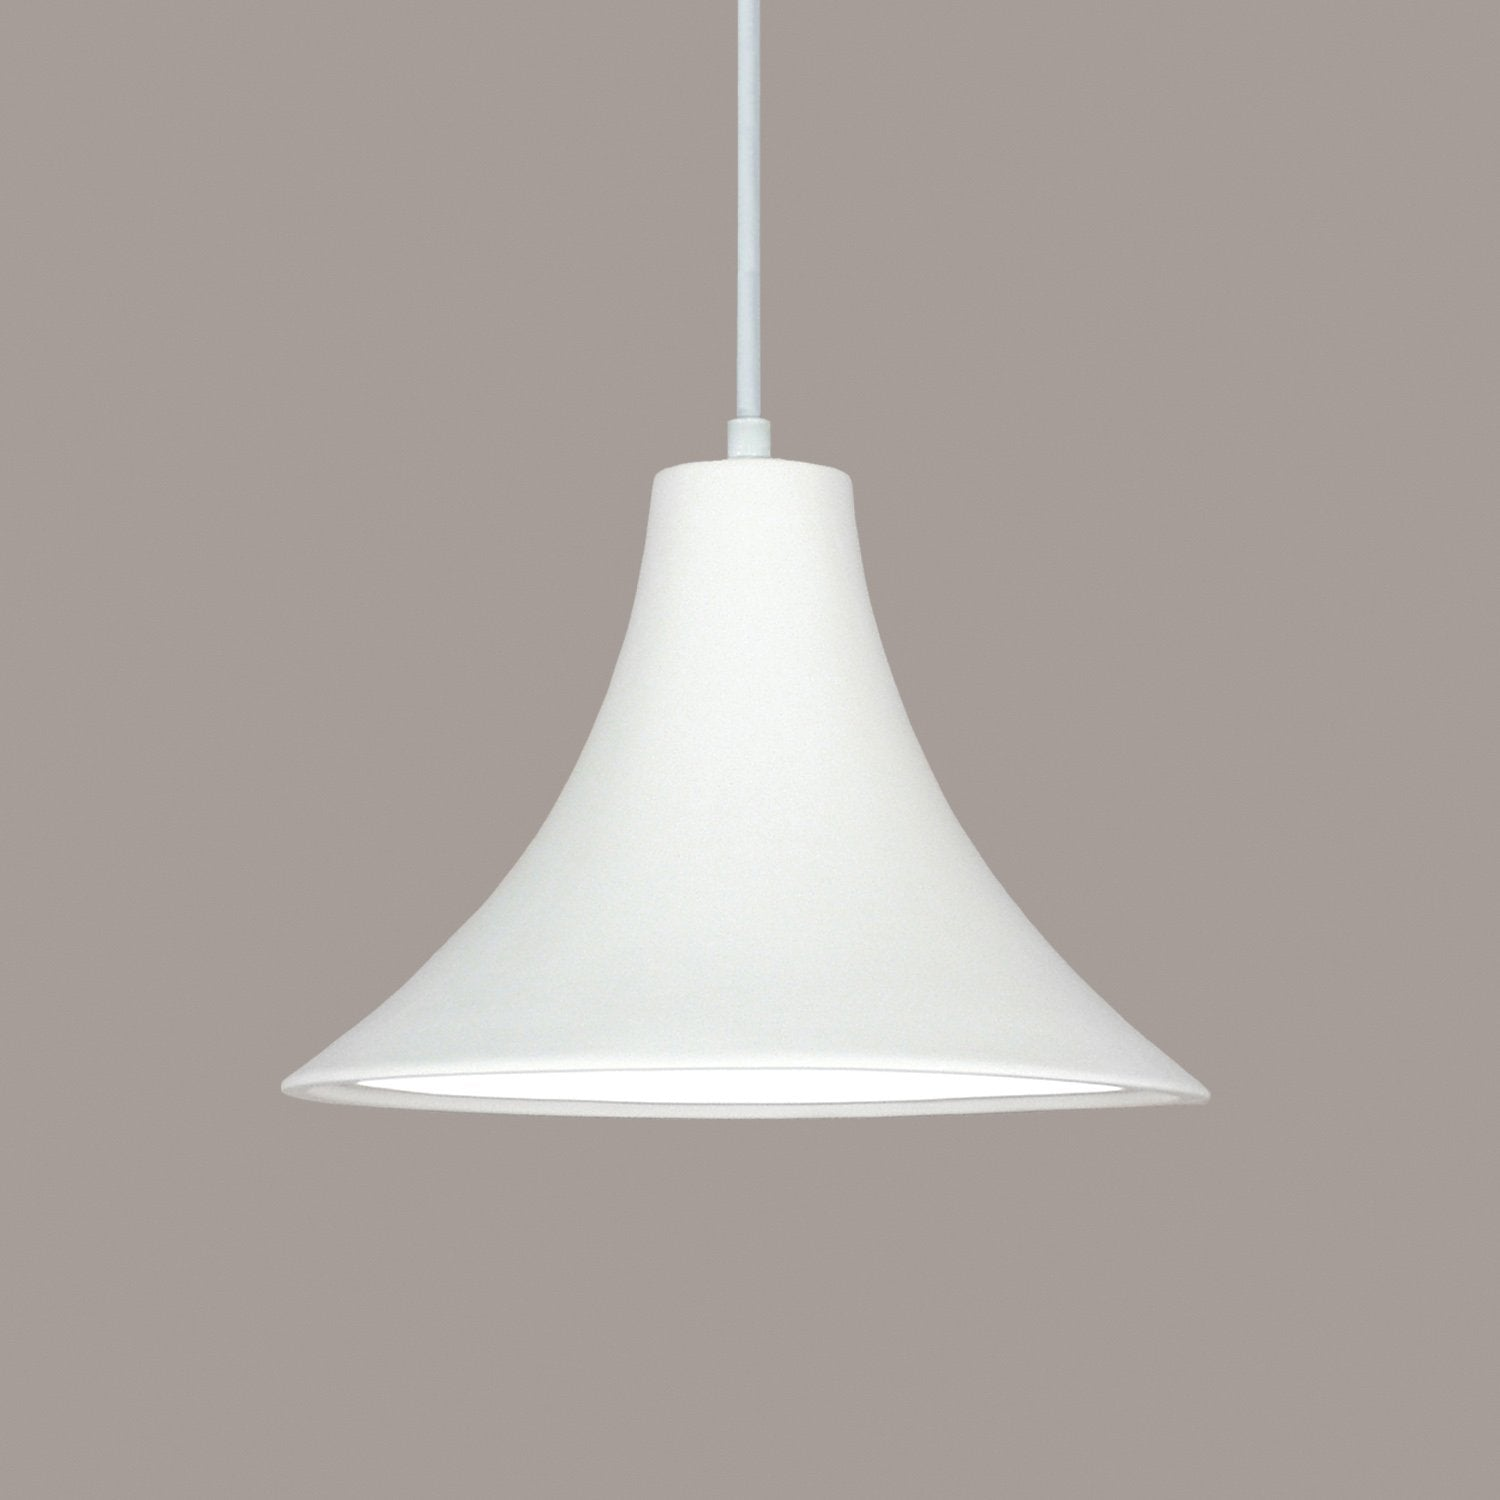 A19 P501-A20-WCC Islands of Light Collection Madera Spanish Olive Finish Pendant